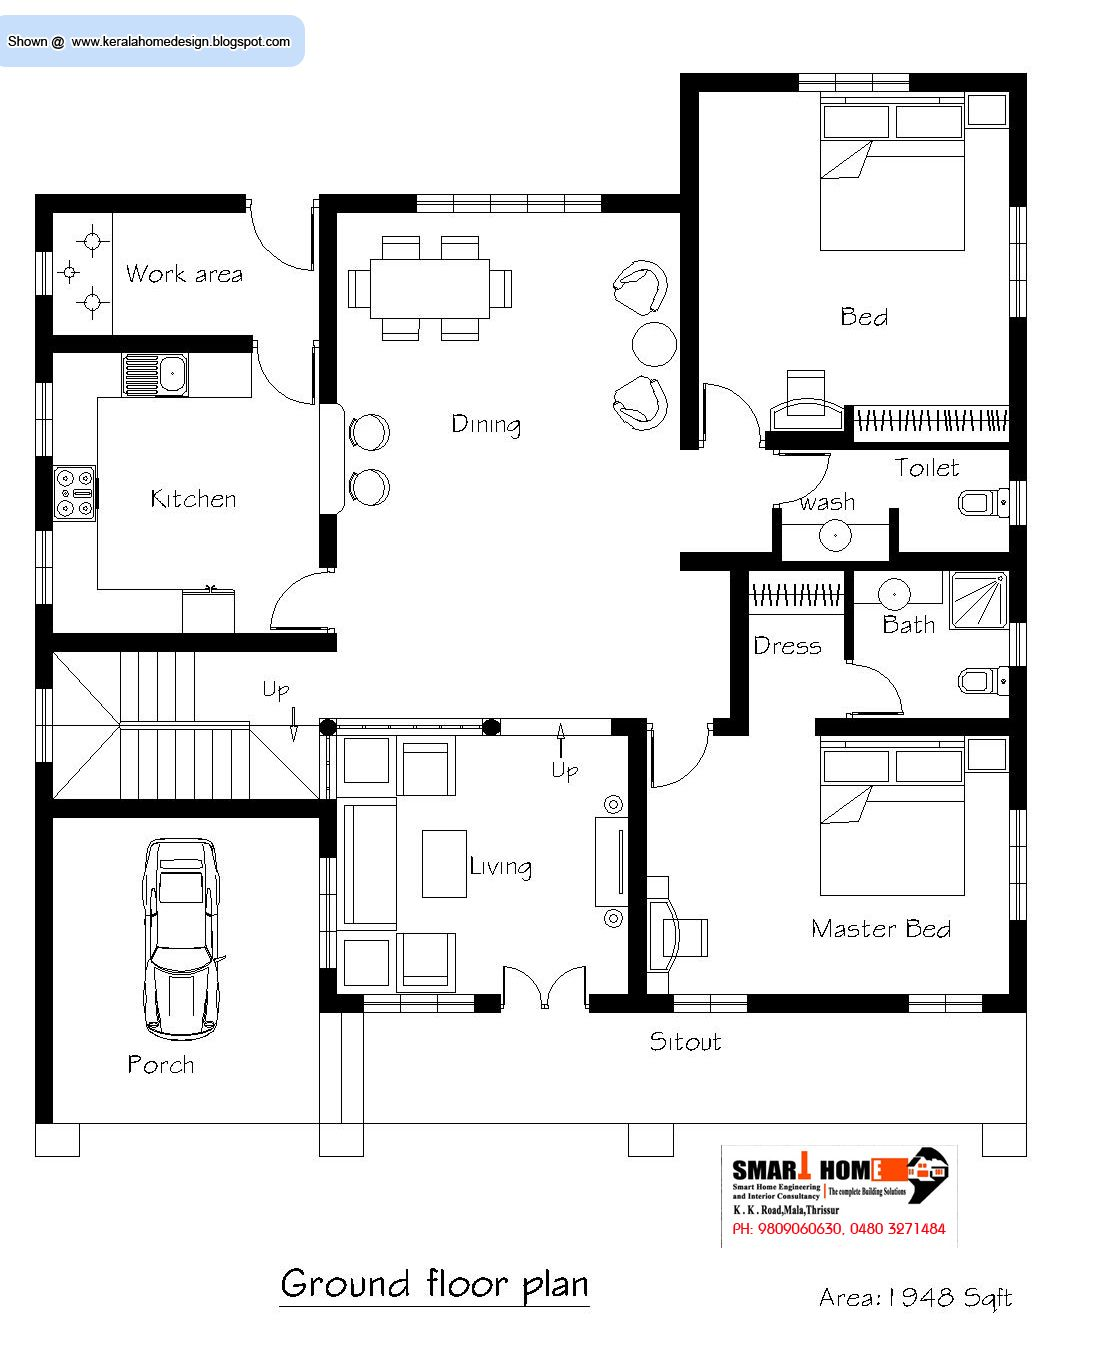 Pin By Ranjeetha Bipin On House Plans In 2019 Kerala